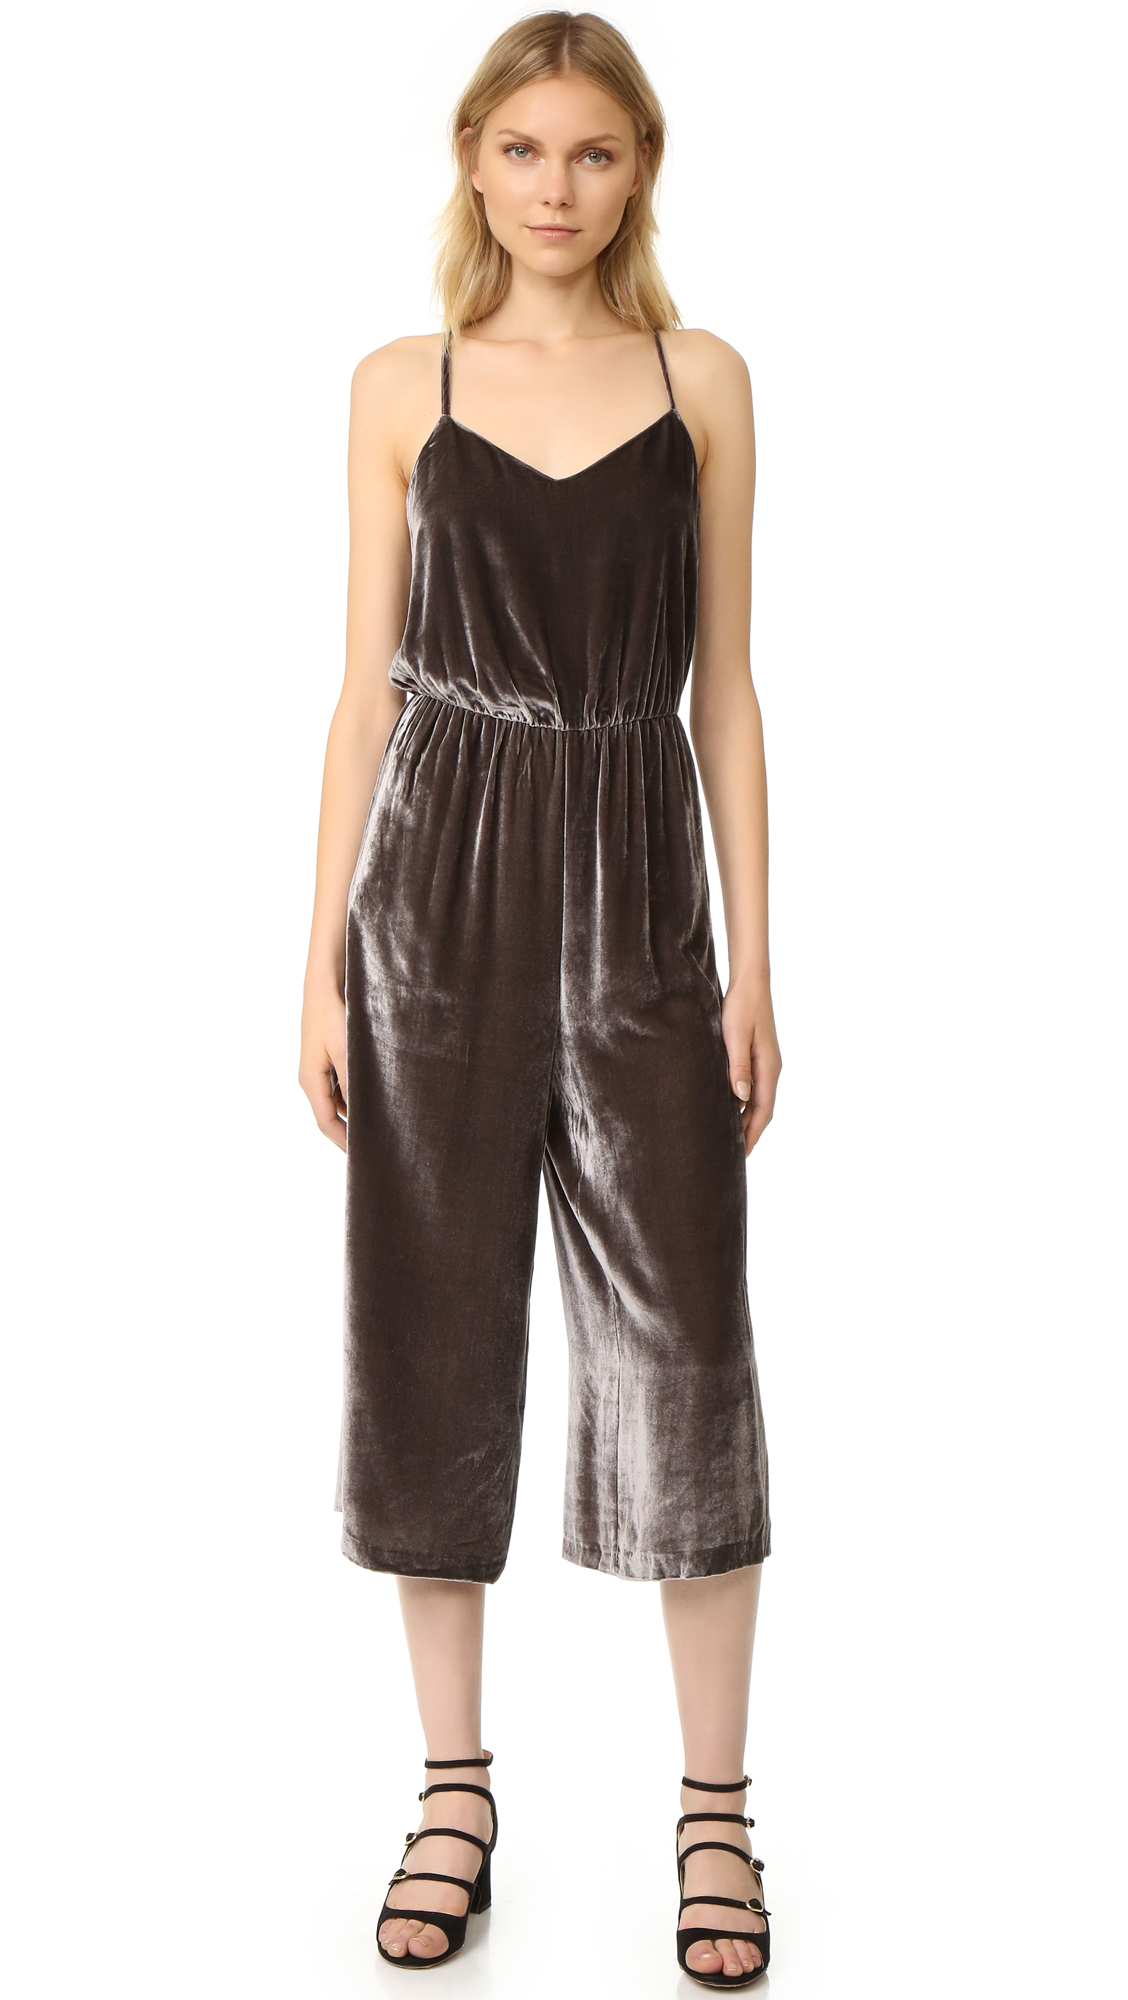 A slouchy Madewell jumpsuit in soft velvet. Gathered elastic waistband. On seam pockets. Adjustable shoulder straps. Hidden back zip. Lined. Fabric: Velvet. Shell: 82% viscose/18% silk. Lining: 100% polyester. Dry clean. Imported, China. Measurements Inseam: 20.75in / 53cm Leg